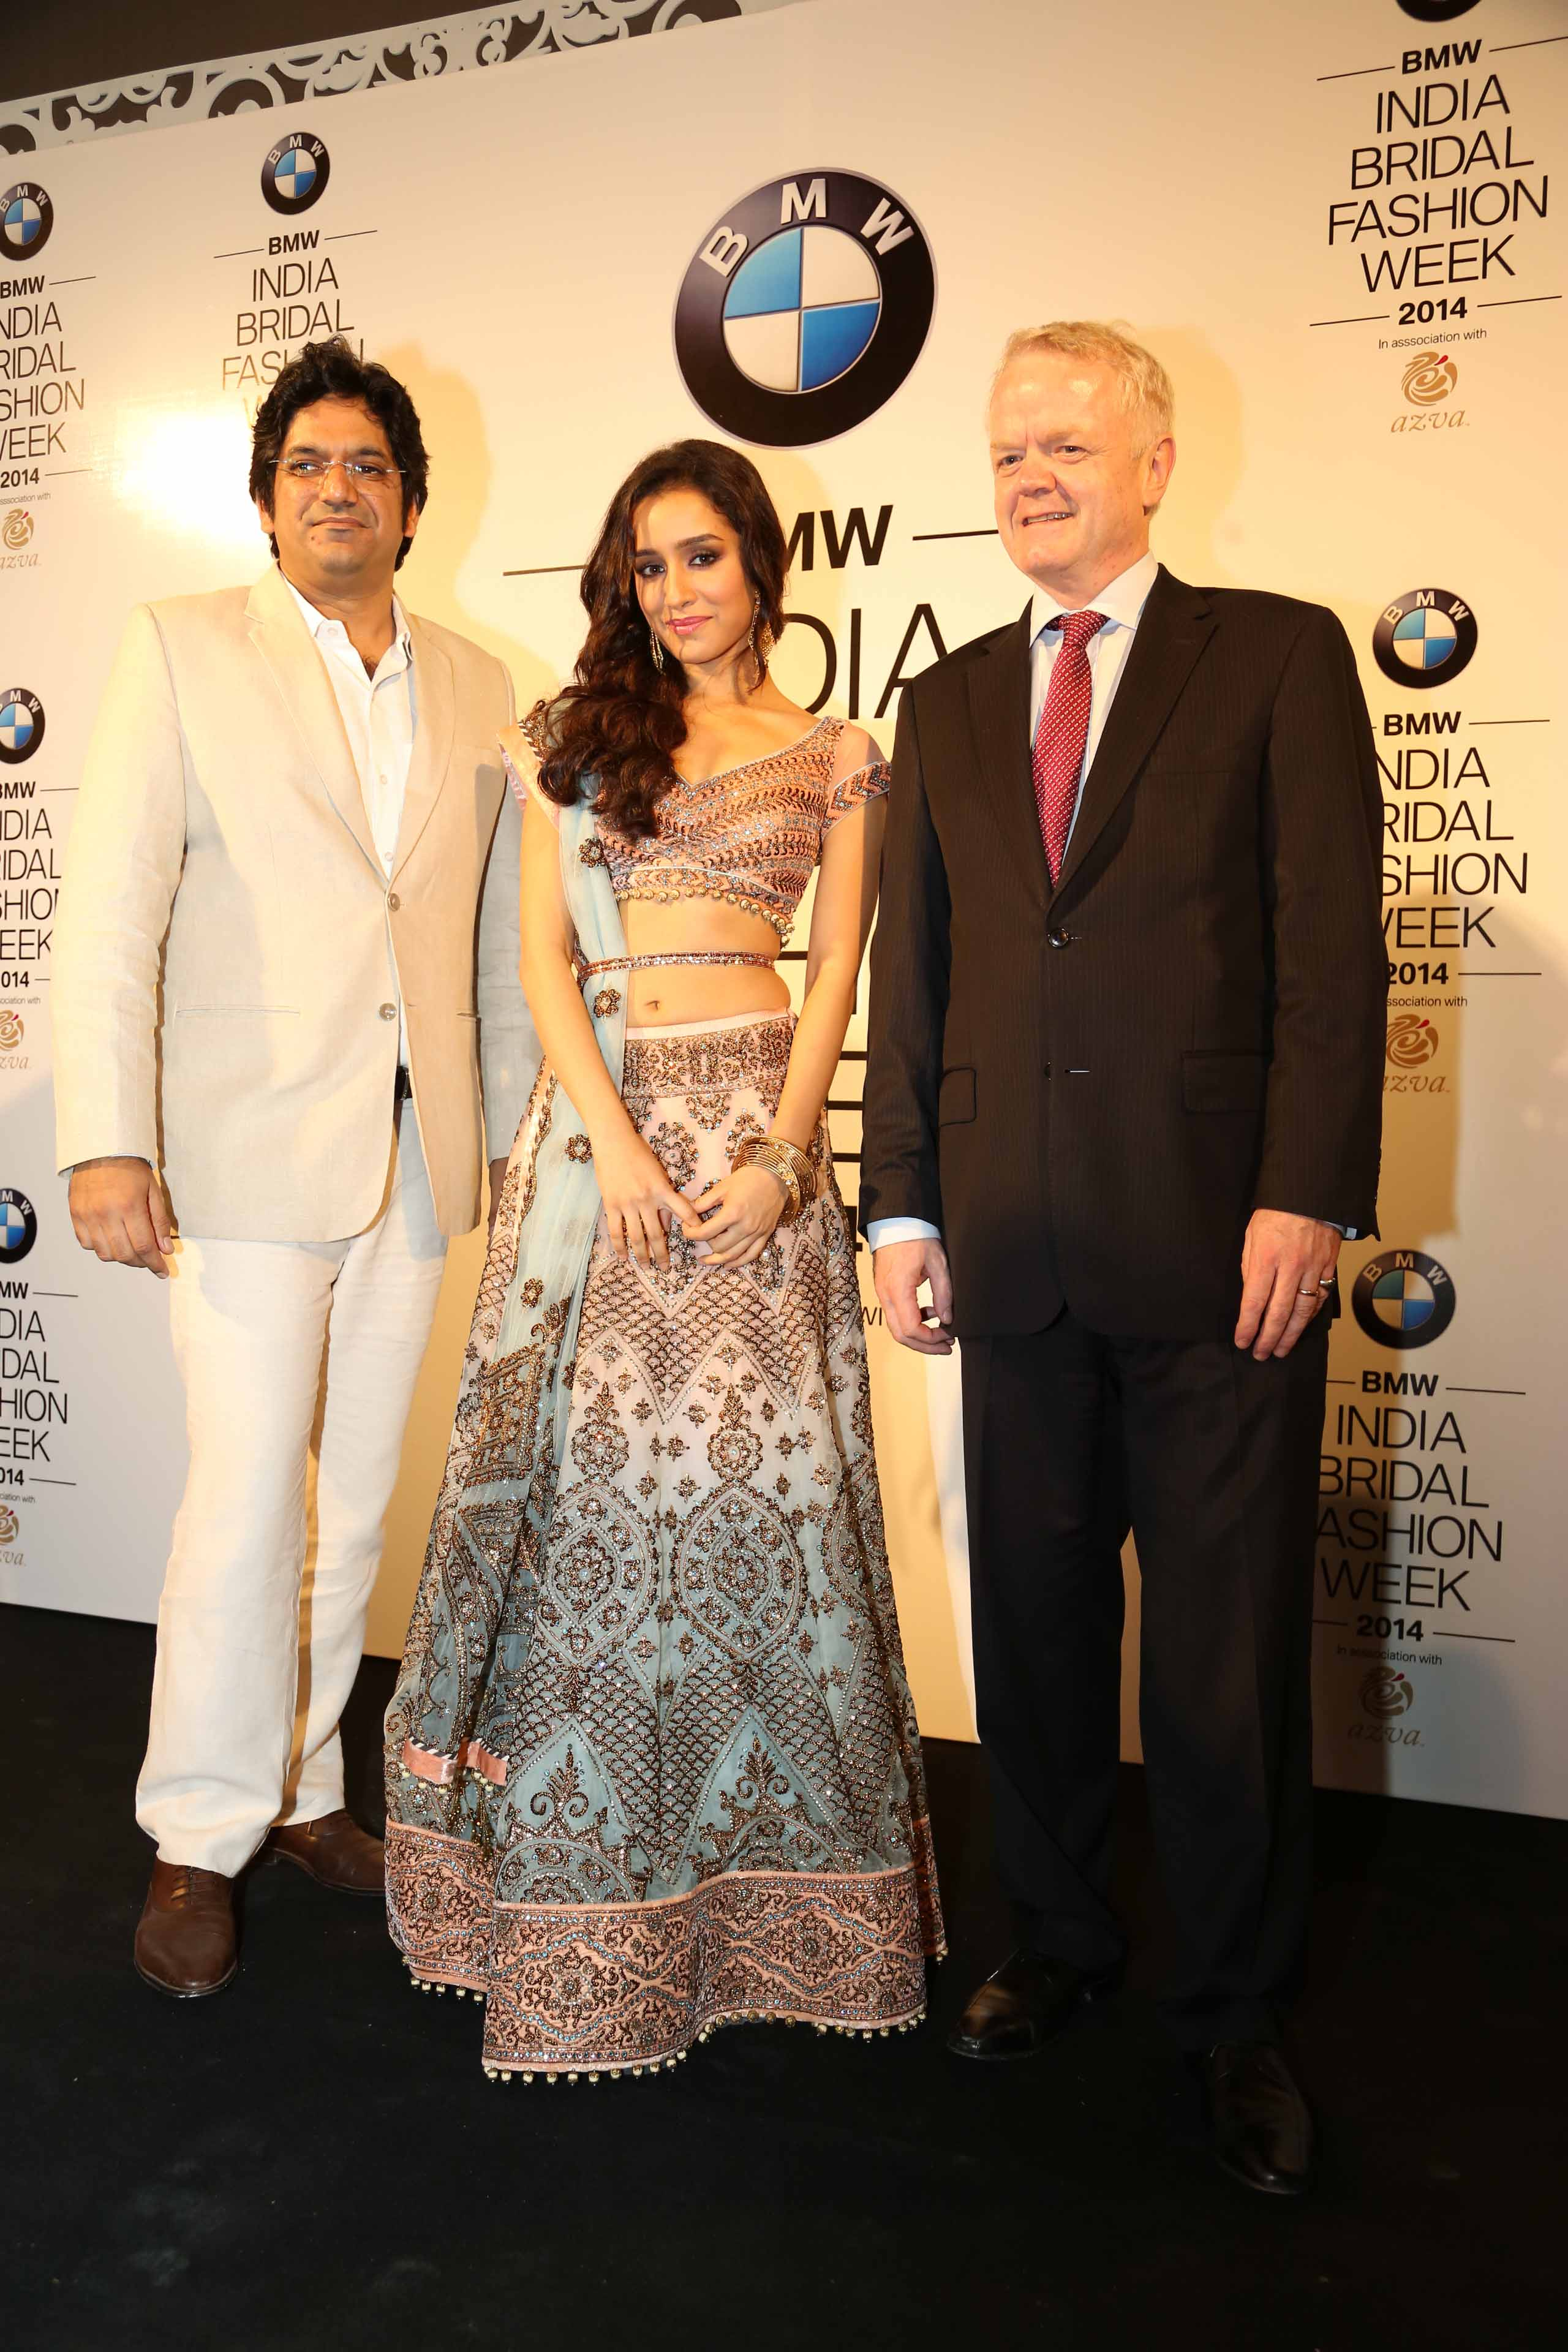 BMW  India Bridal Fashion Week  2014 in assocation with AZVA at DLF Emporio (177)